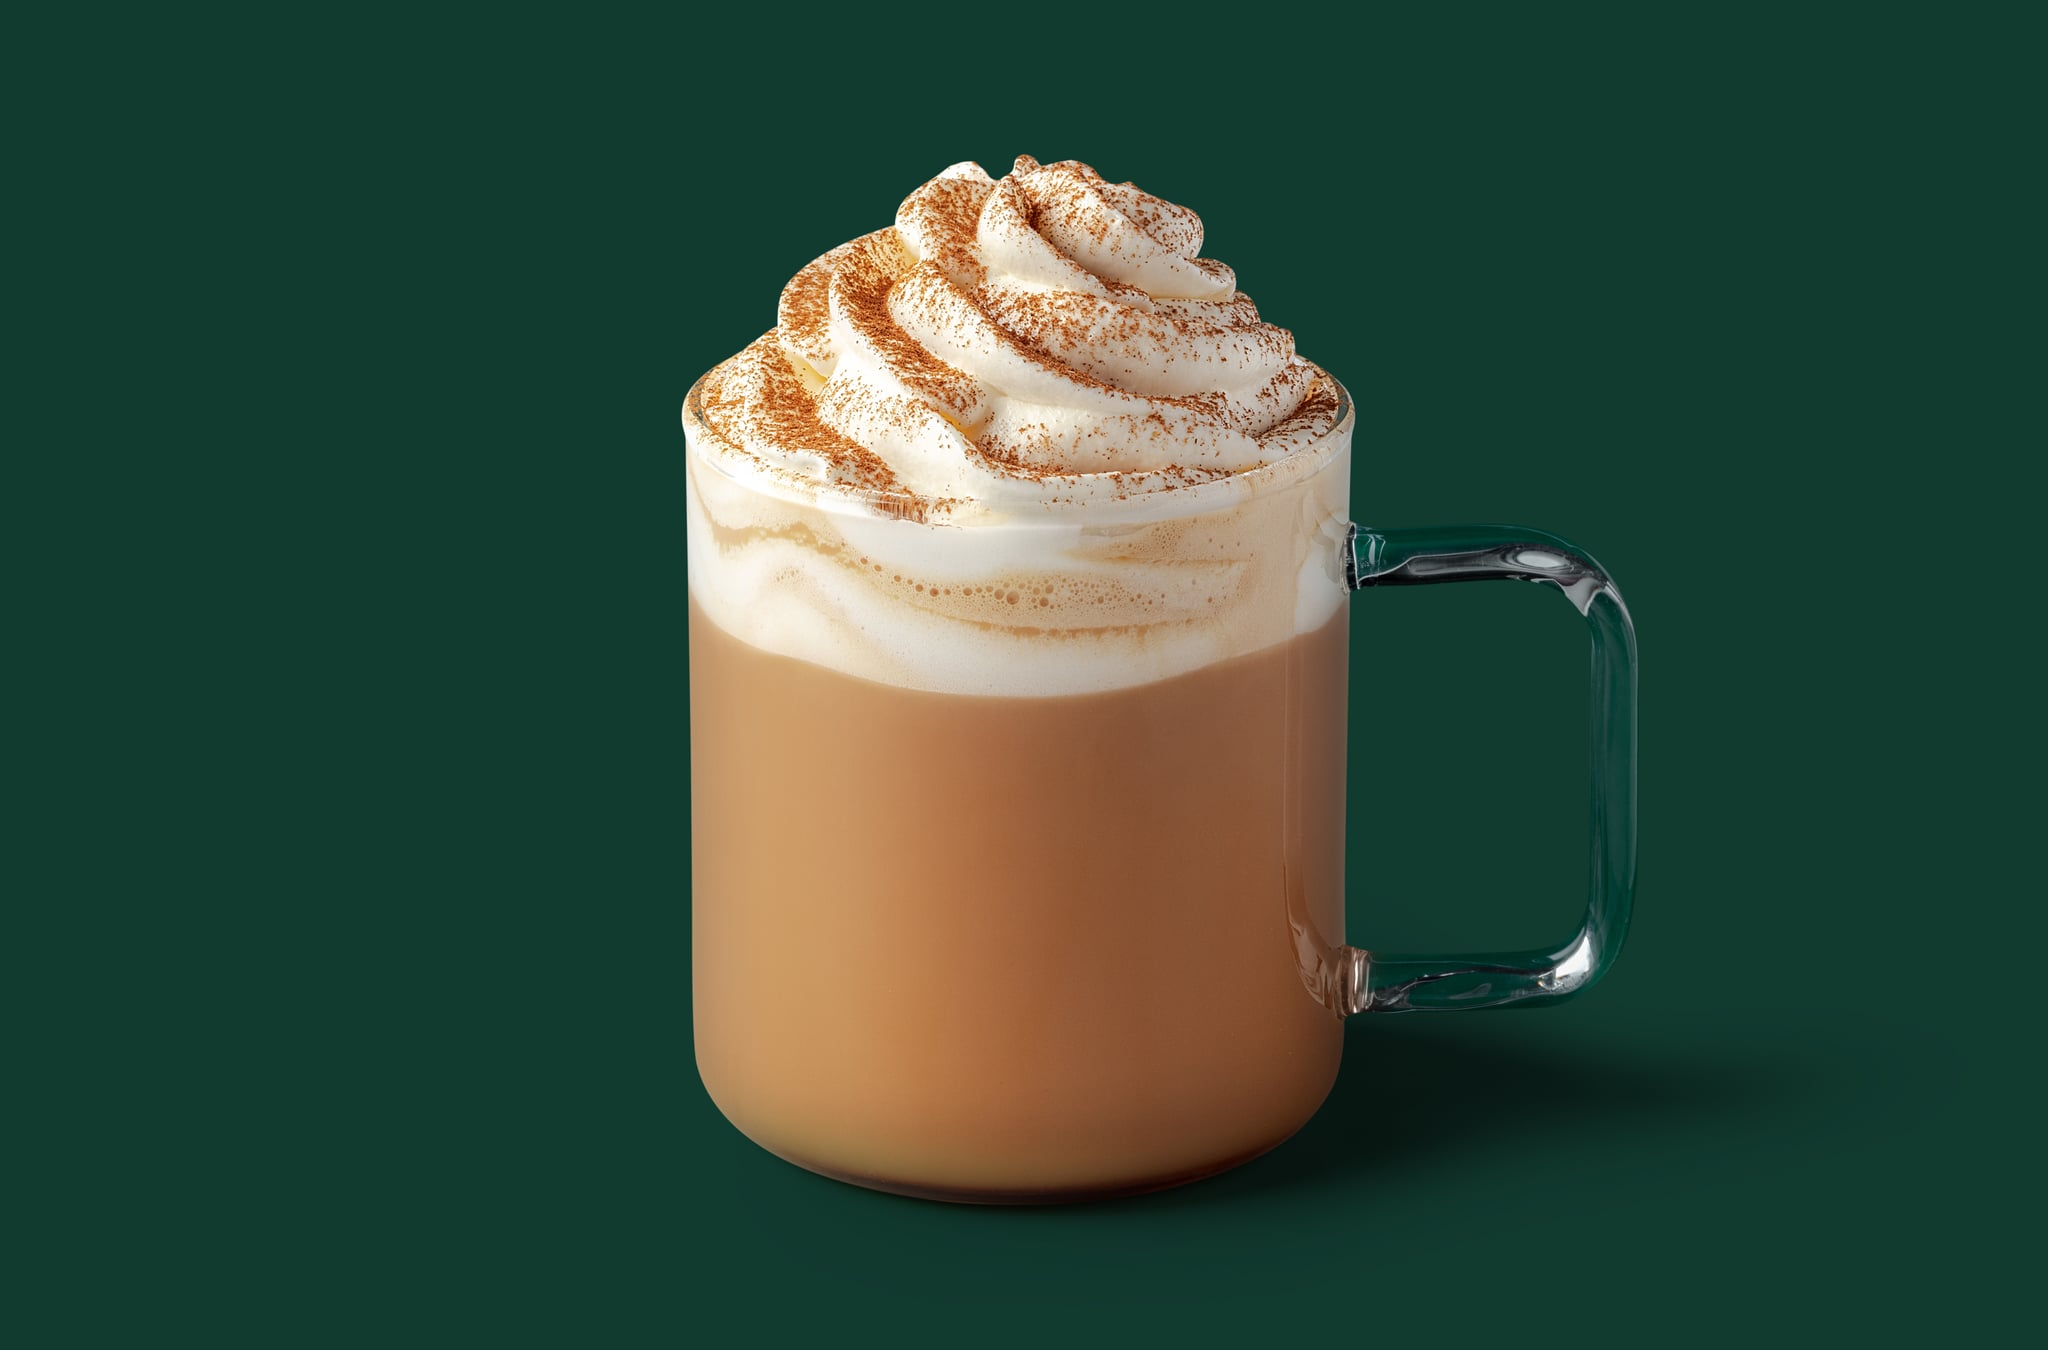 When Is Starbucks's Pumpkin Spice Latte Available in 2019? | POPSUGAR Food UK